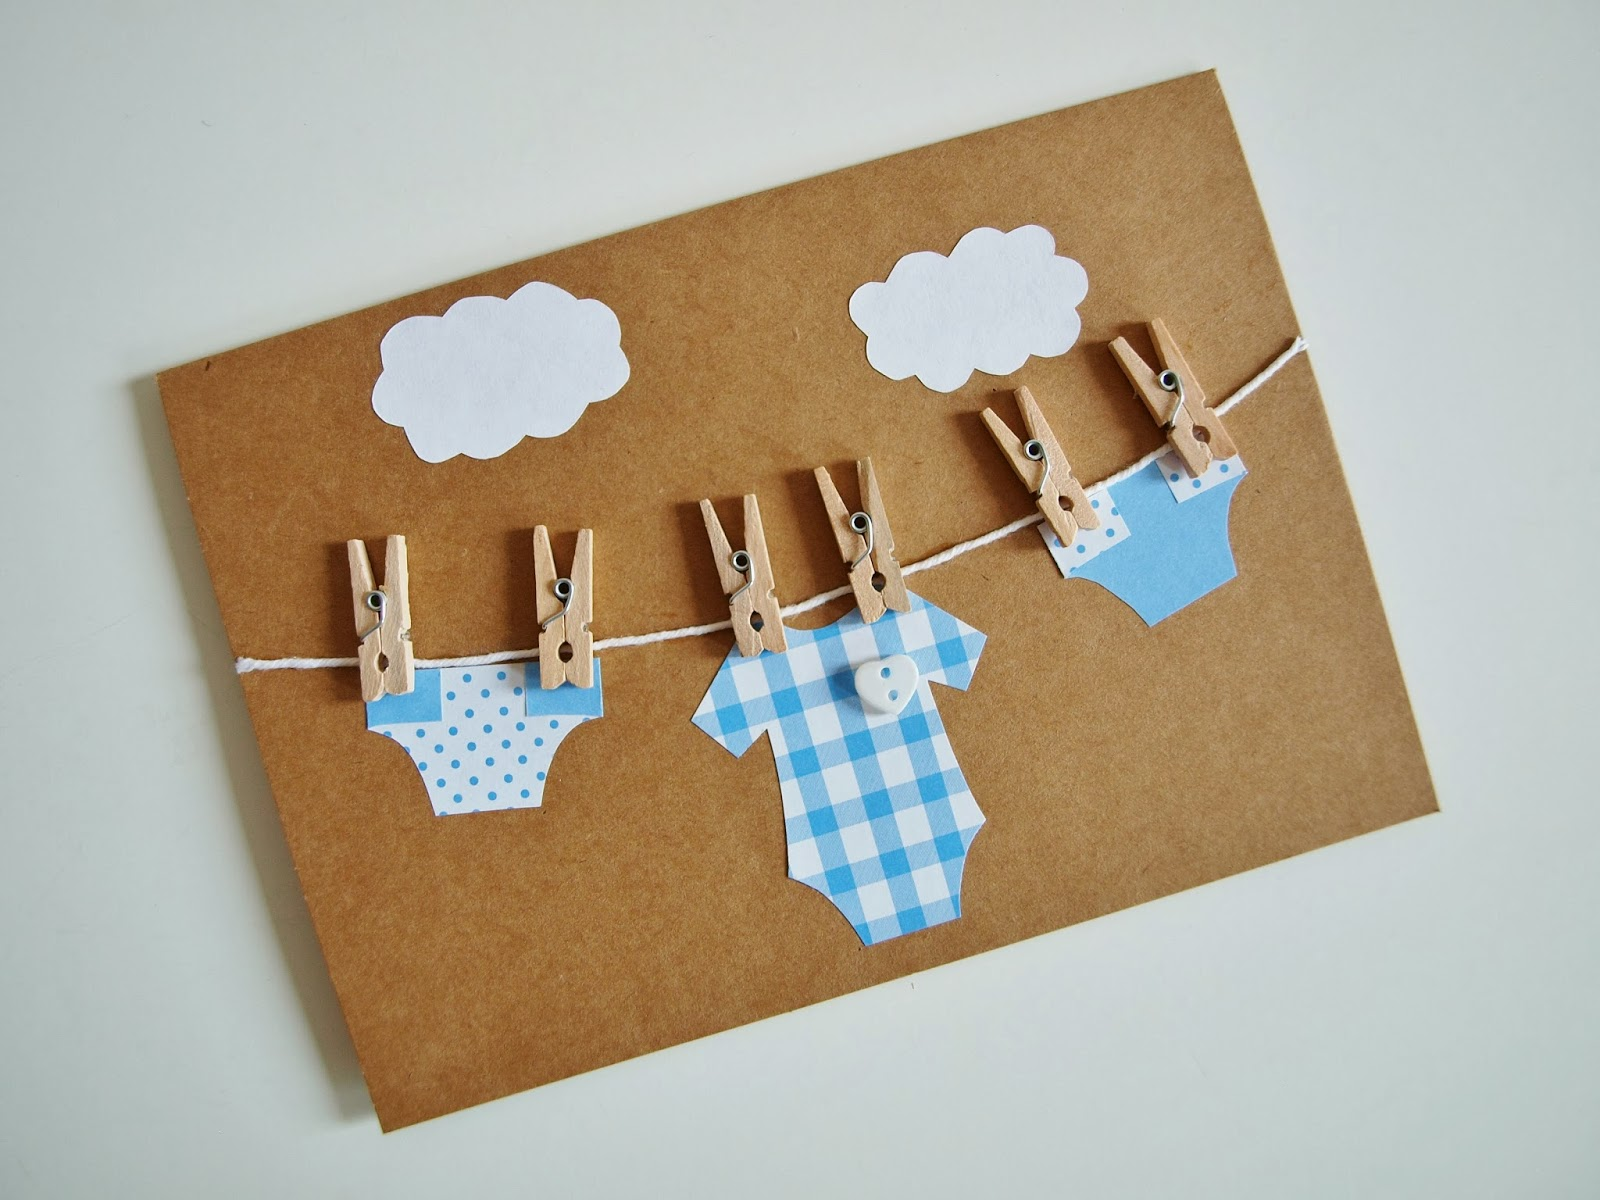 Crafted by Carly: Three Handmade Baby Cards